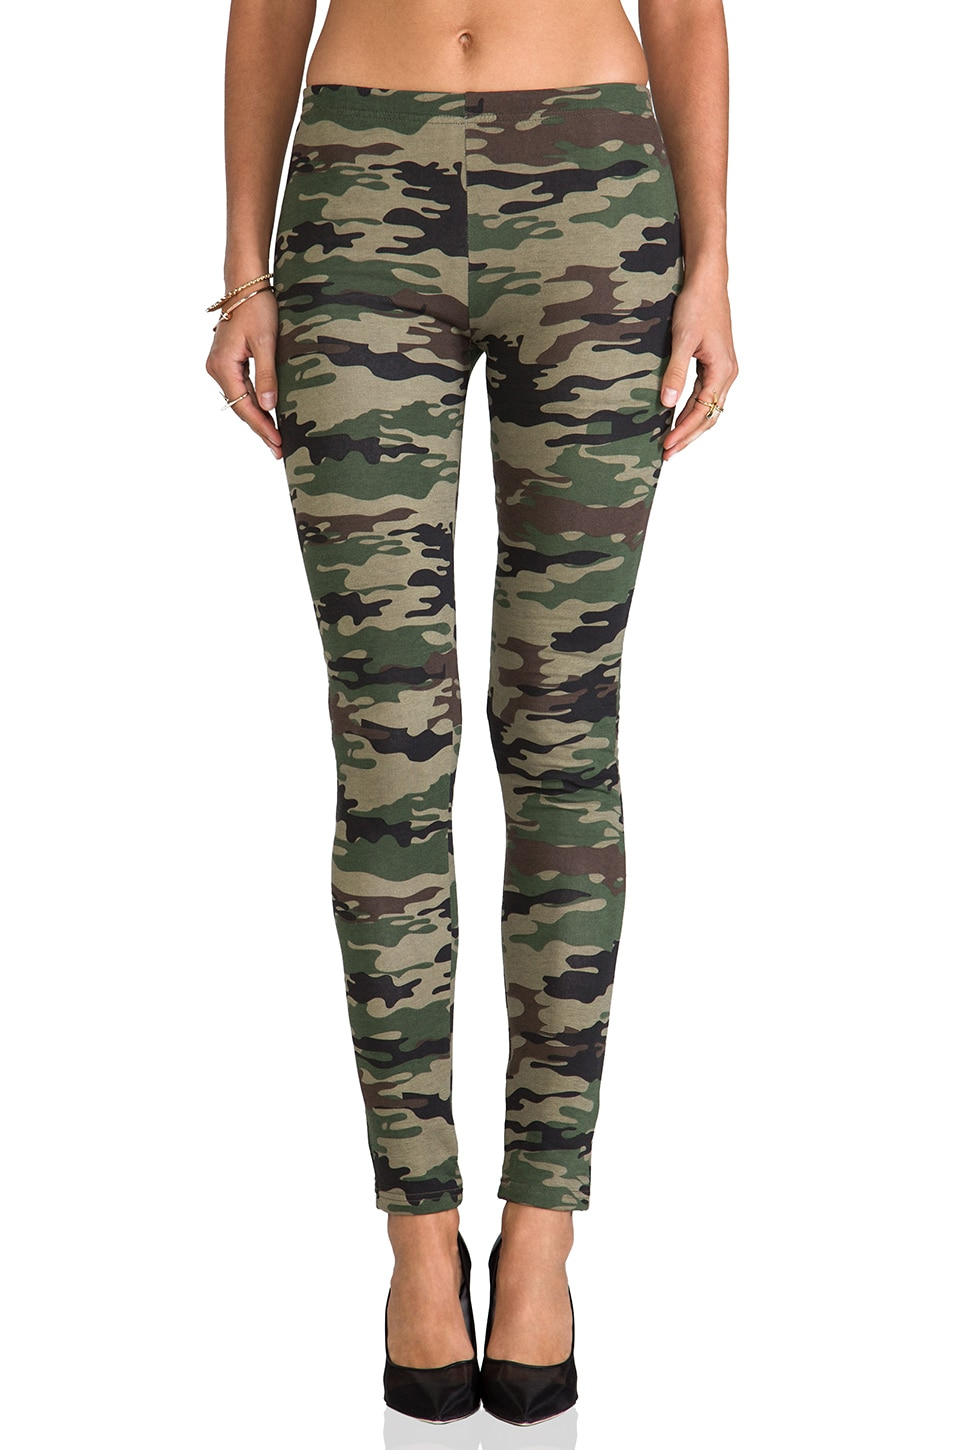 Plush Camo Print Legging in Green Camo